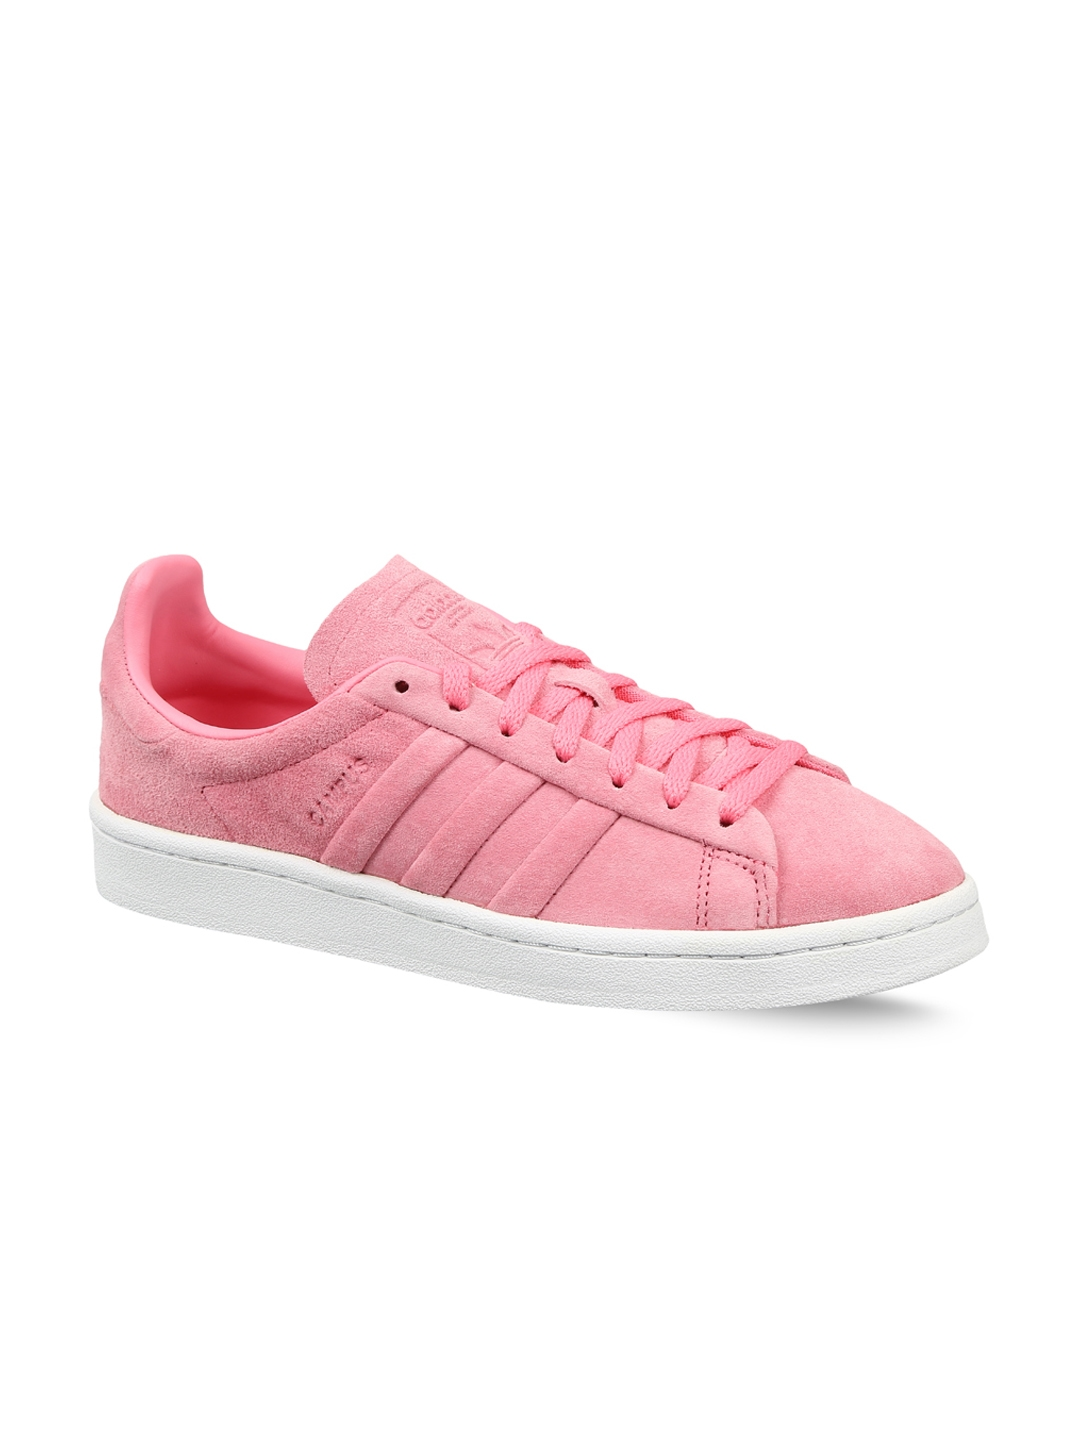 new style 5b6c8 93f66 ADIDAS Originals Women Pink Campus Stitch And Turn Sneakers